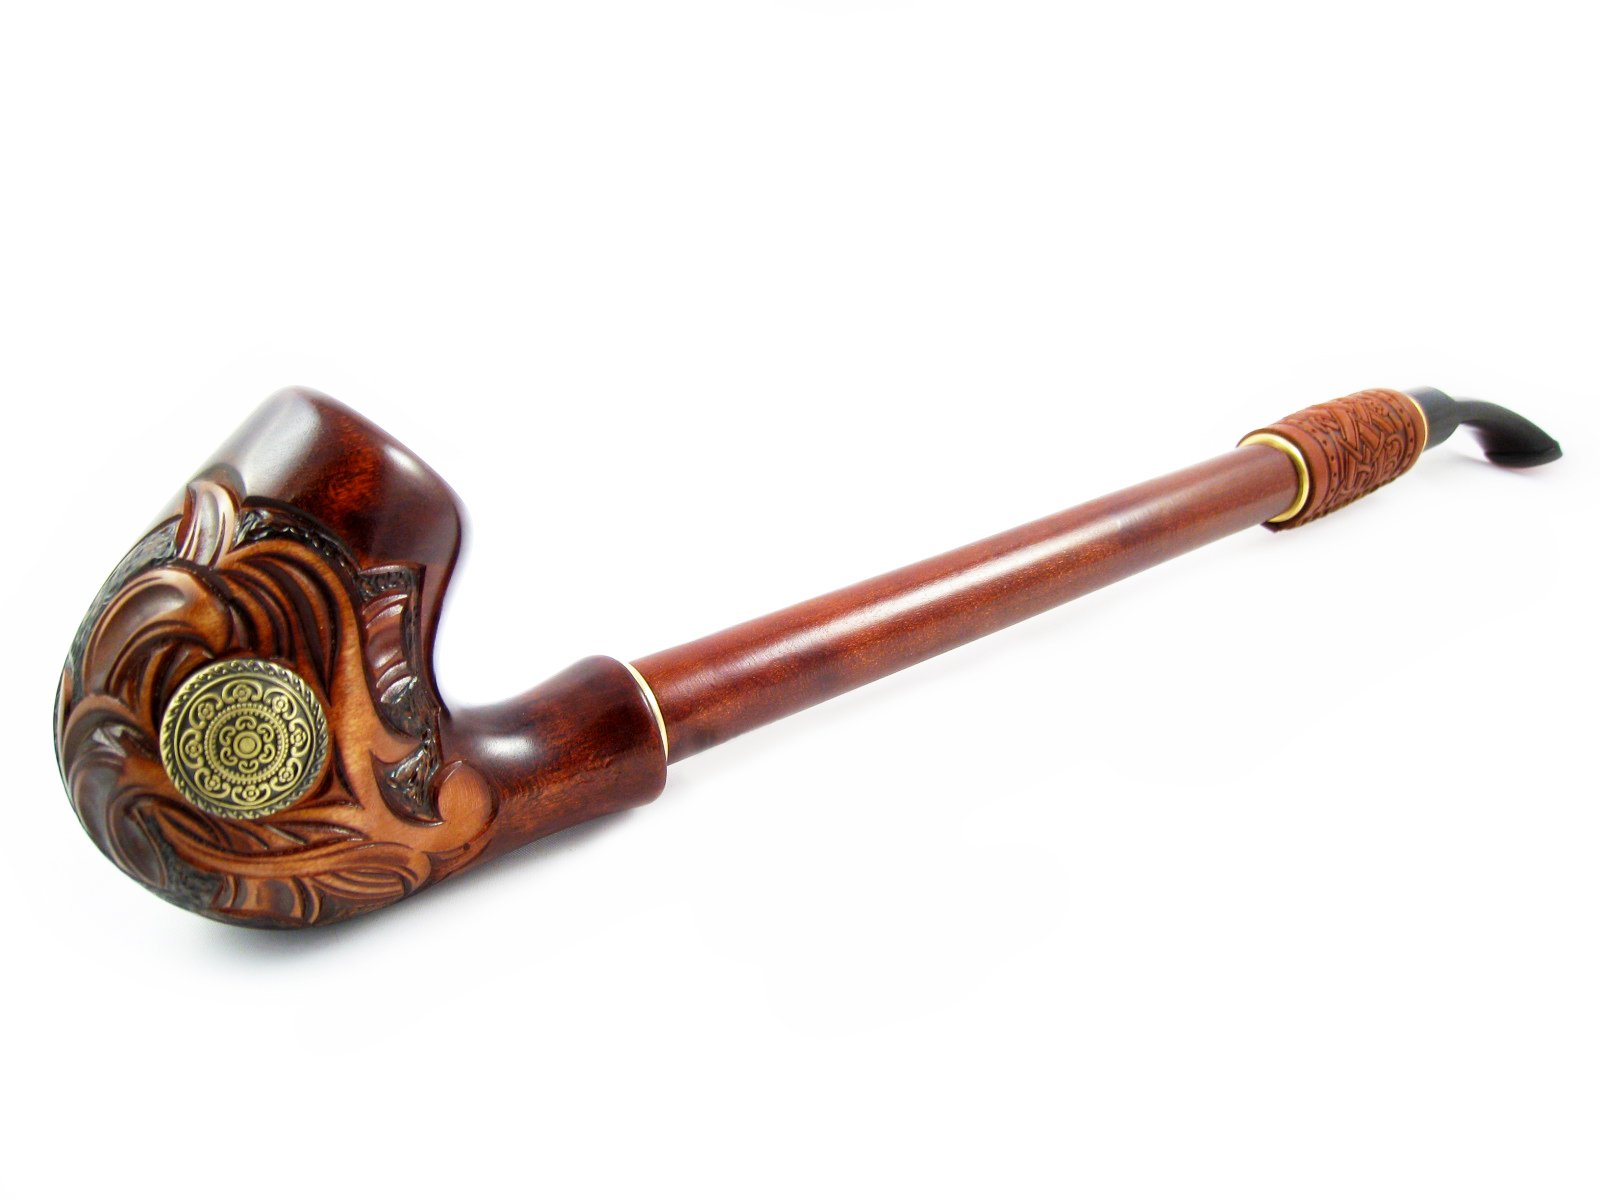 NEW Churchwarden ''NORDIC'' Wooden Tobacco Pipe Decorated with Leather, Handcrafted Smoking Pipe of Pear Wood 13'', Designed for pipe smokers ... (1) by Fashion Pipes